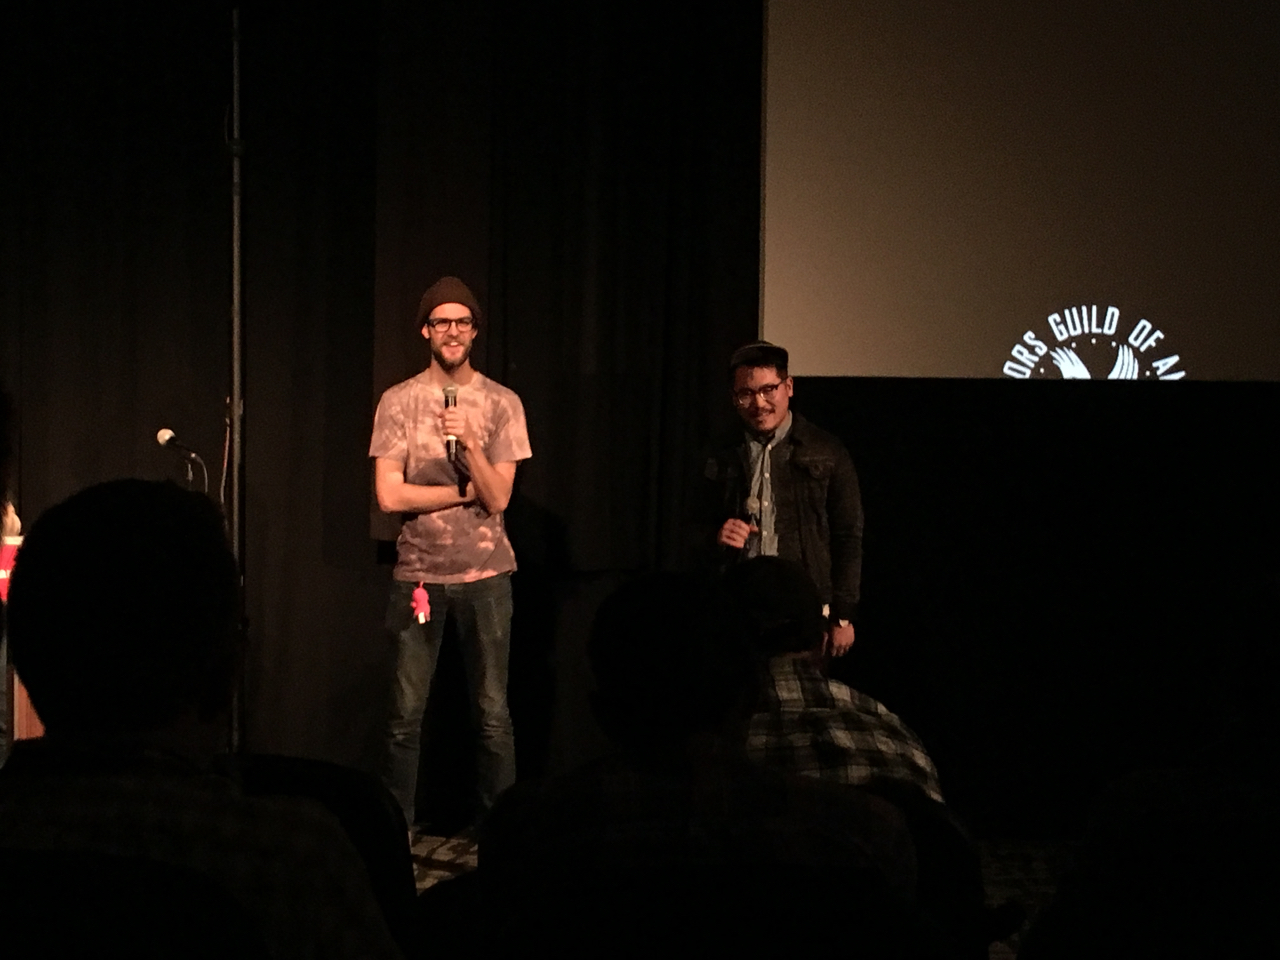 Directors Daniel Scheinert (Left) and Daniel Kwan (Right)